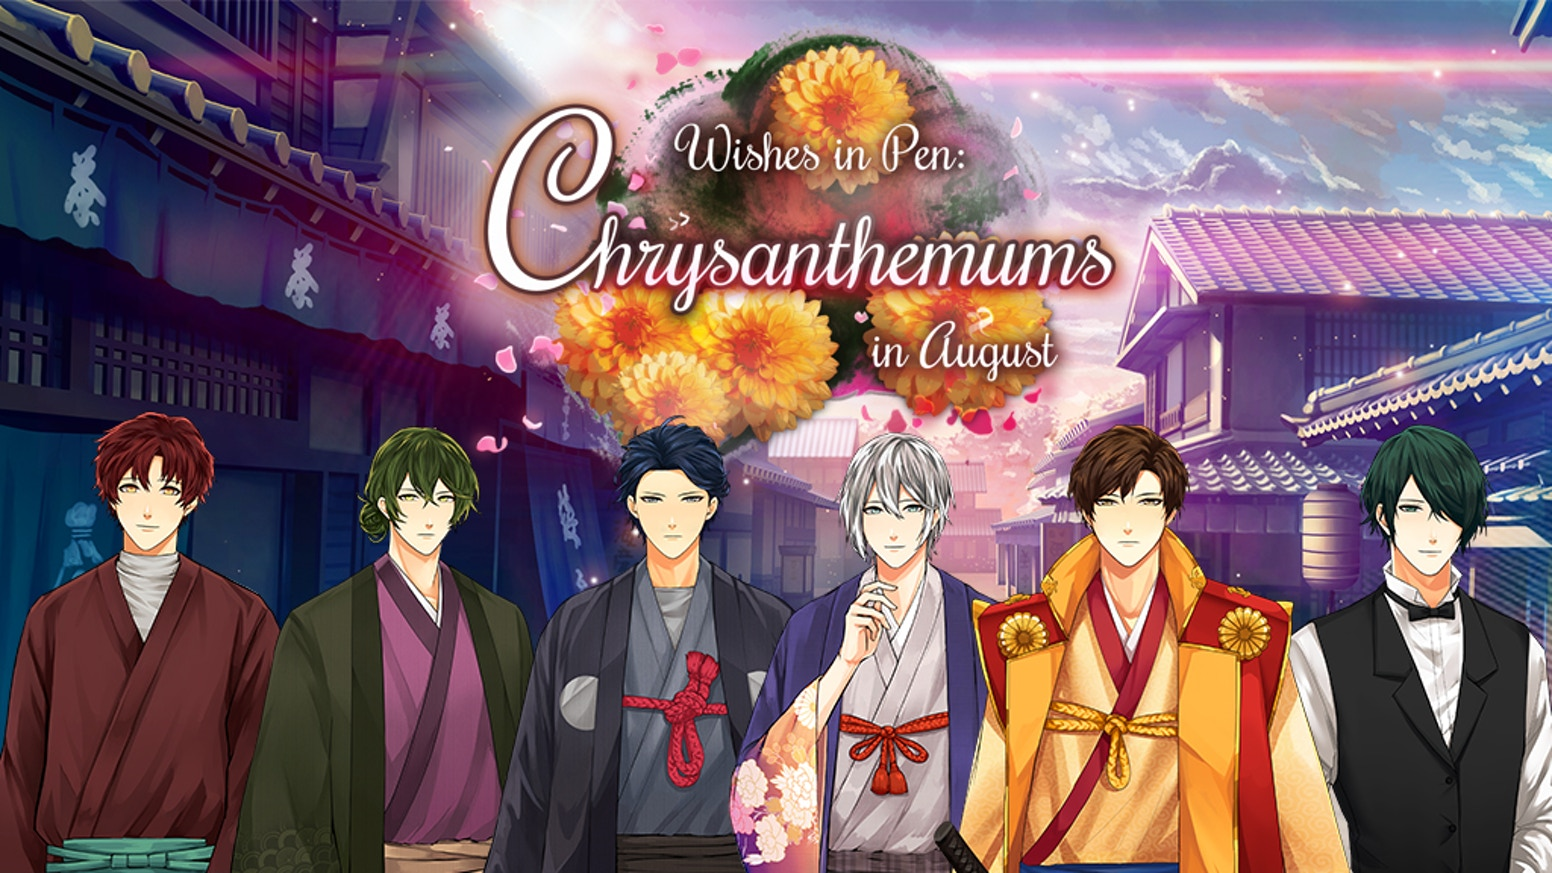 An immersive time-slip otome game that places the player in 1860s Japan, right at the end of the Tokugawa Shogunate.